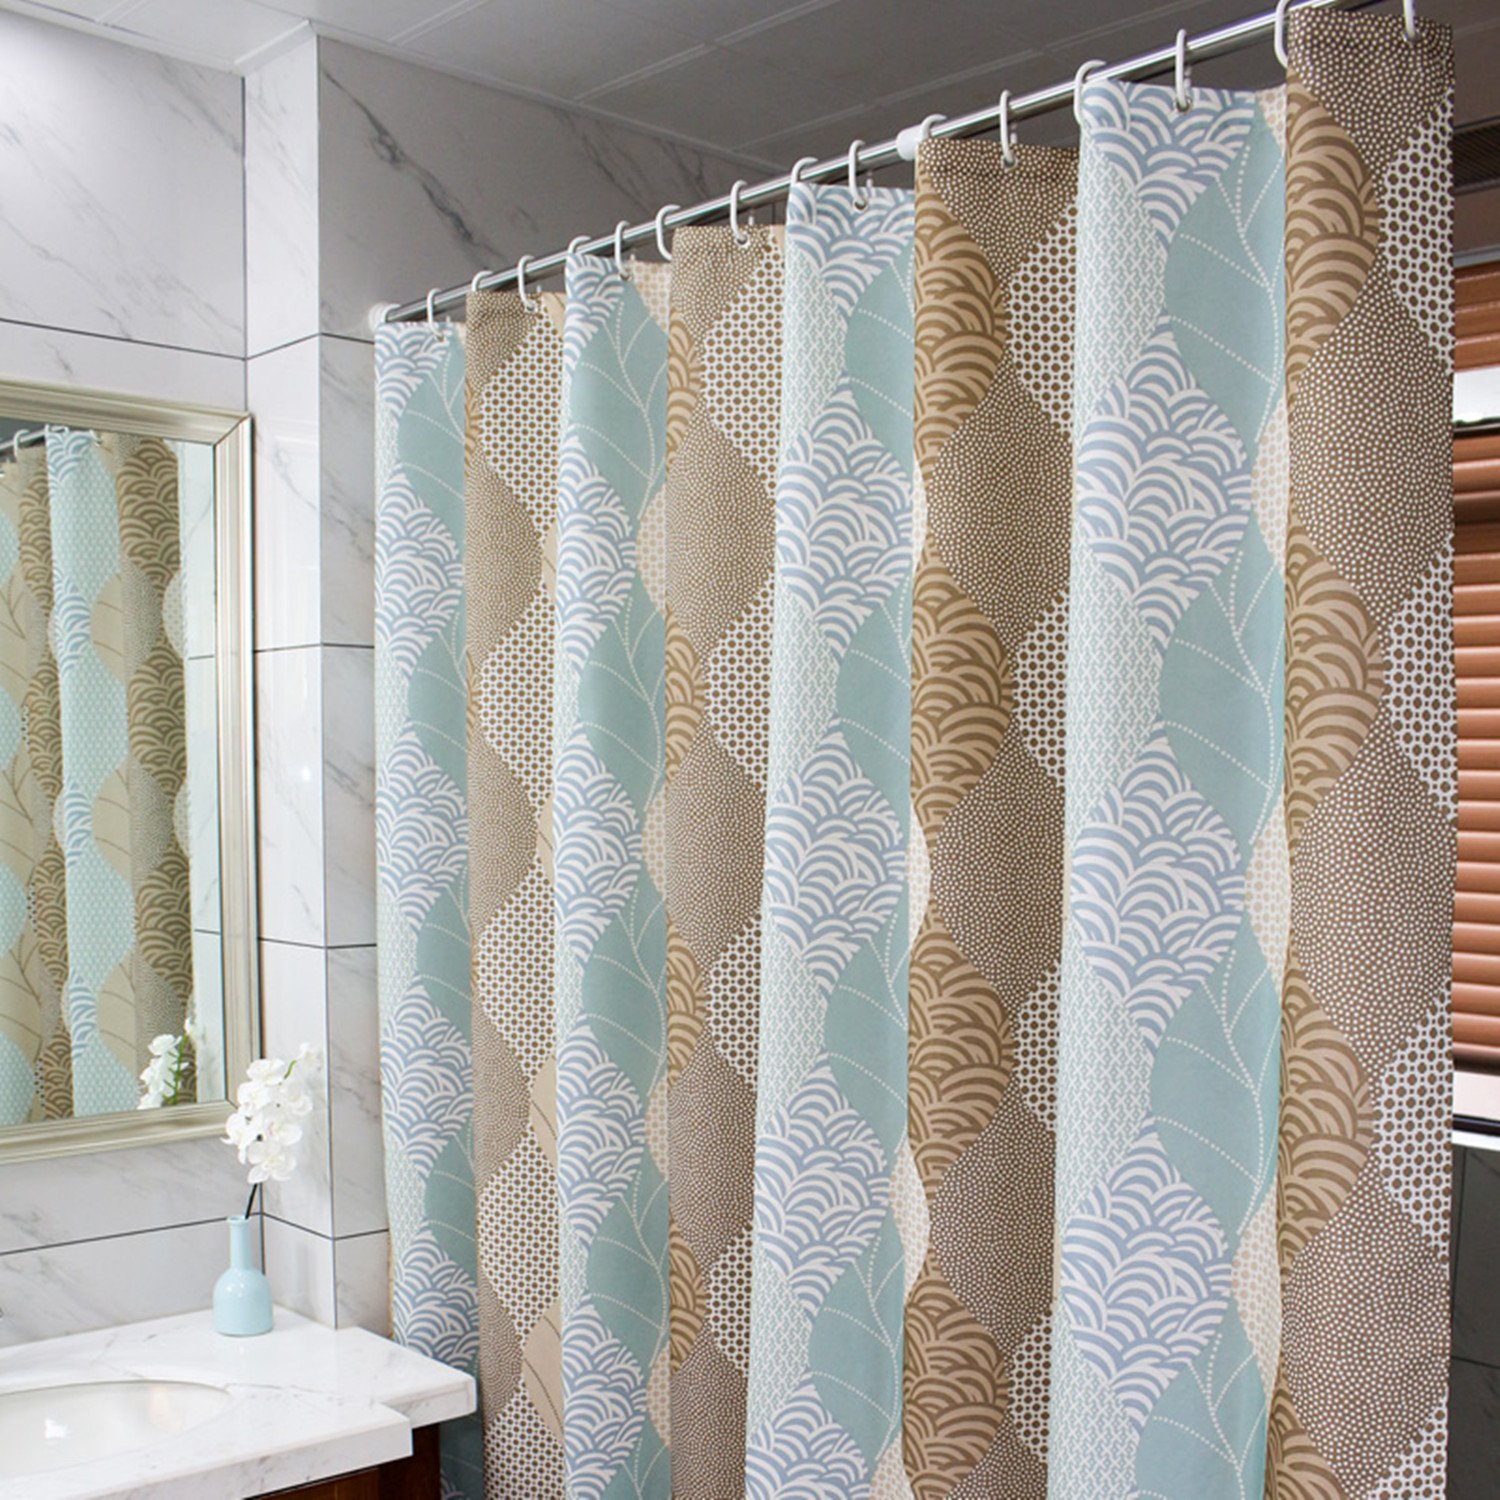 Striped Mold Mildew Resistant Bathroom Shower Curtains Wave Water-Repellent Mildewproof Polyester Fabric for Bathroom Shower Curtains and Bathtubs,Light Brown Beige Turquoise,72x72 inches